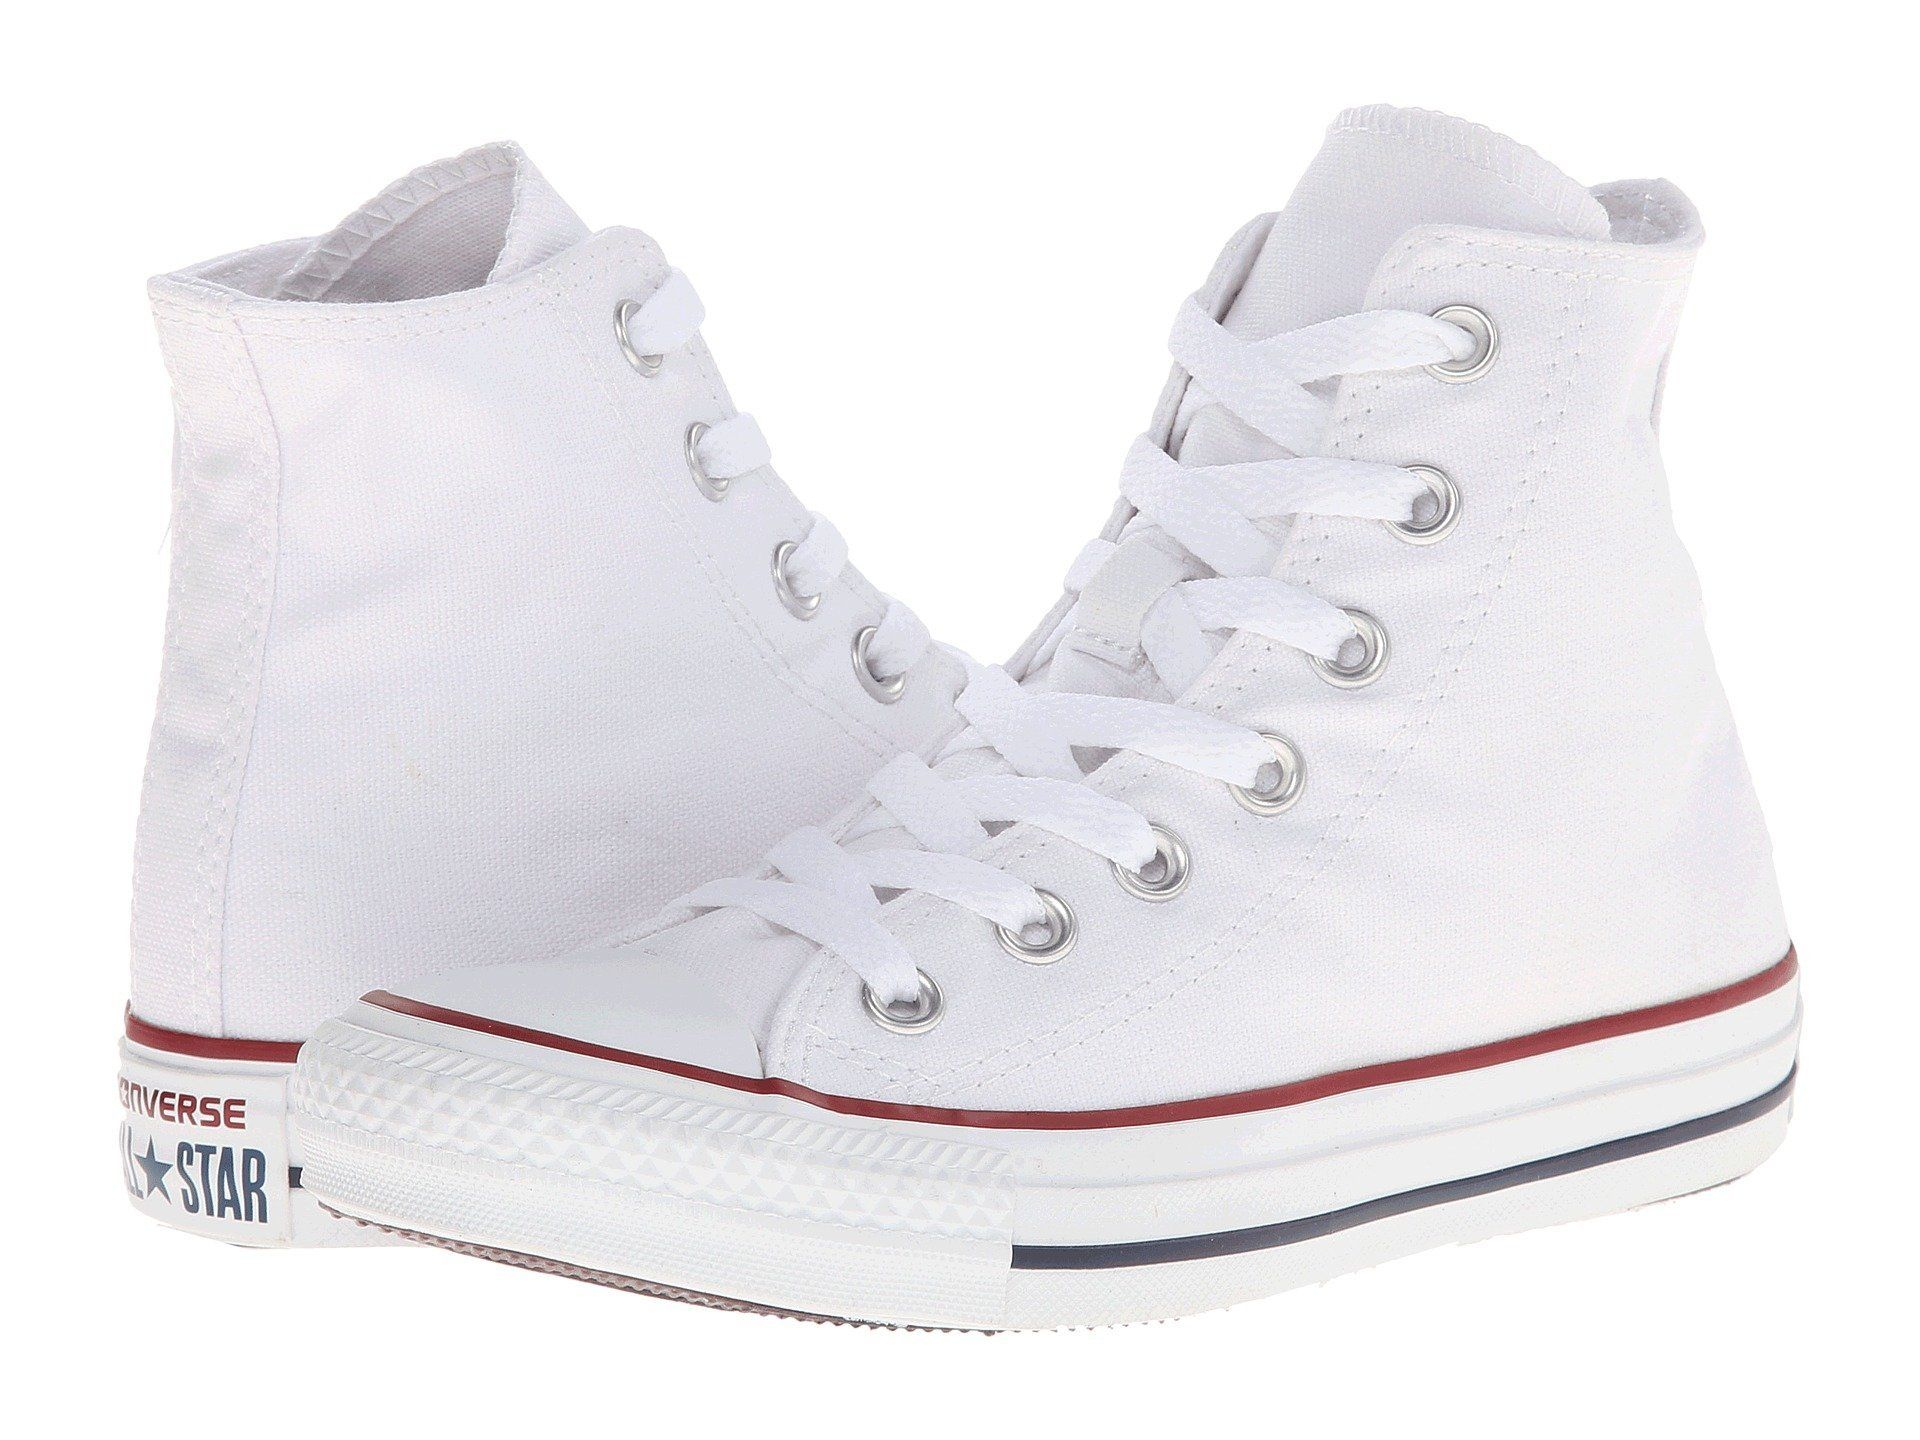 Converse Chuck Taylor All Star Core Hi Optical White in 2020